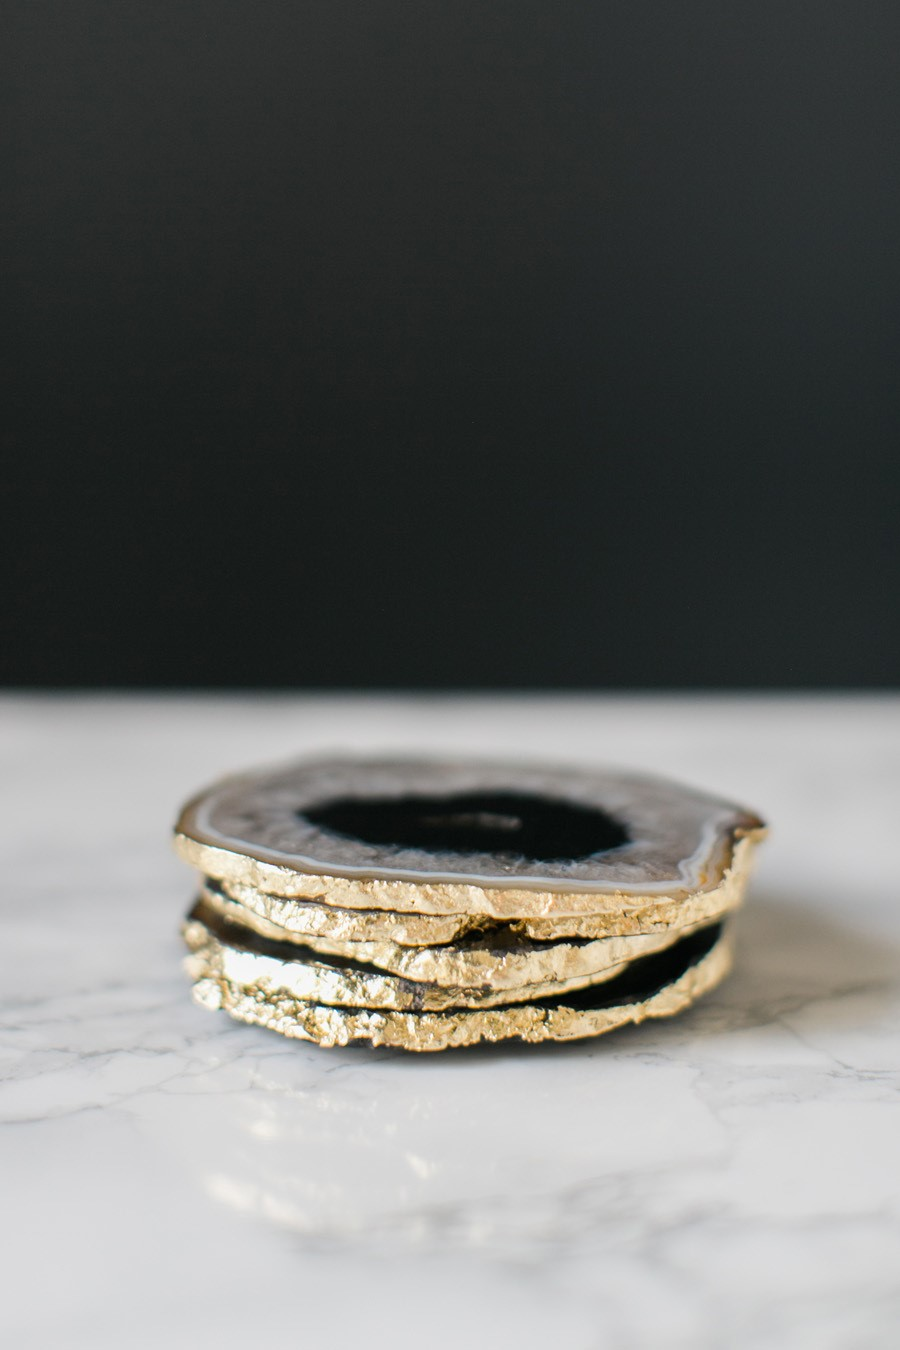 DIY Mother's Day Gifts: DIY Gilded Agate Coasters